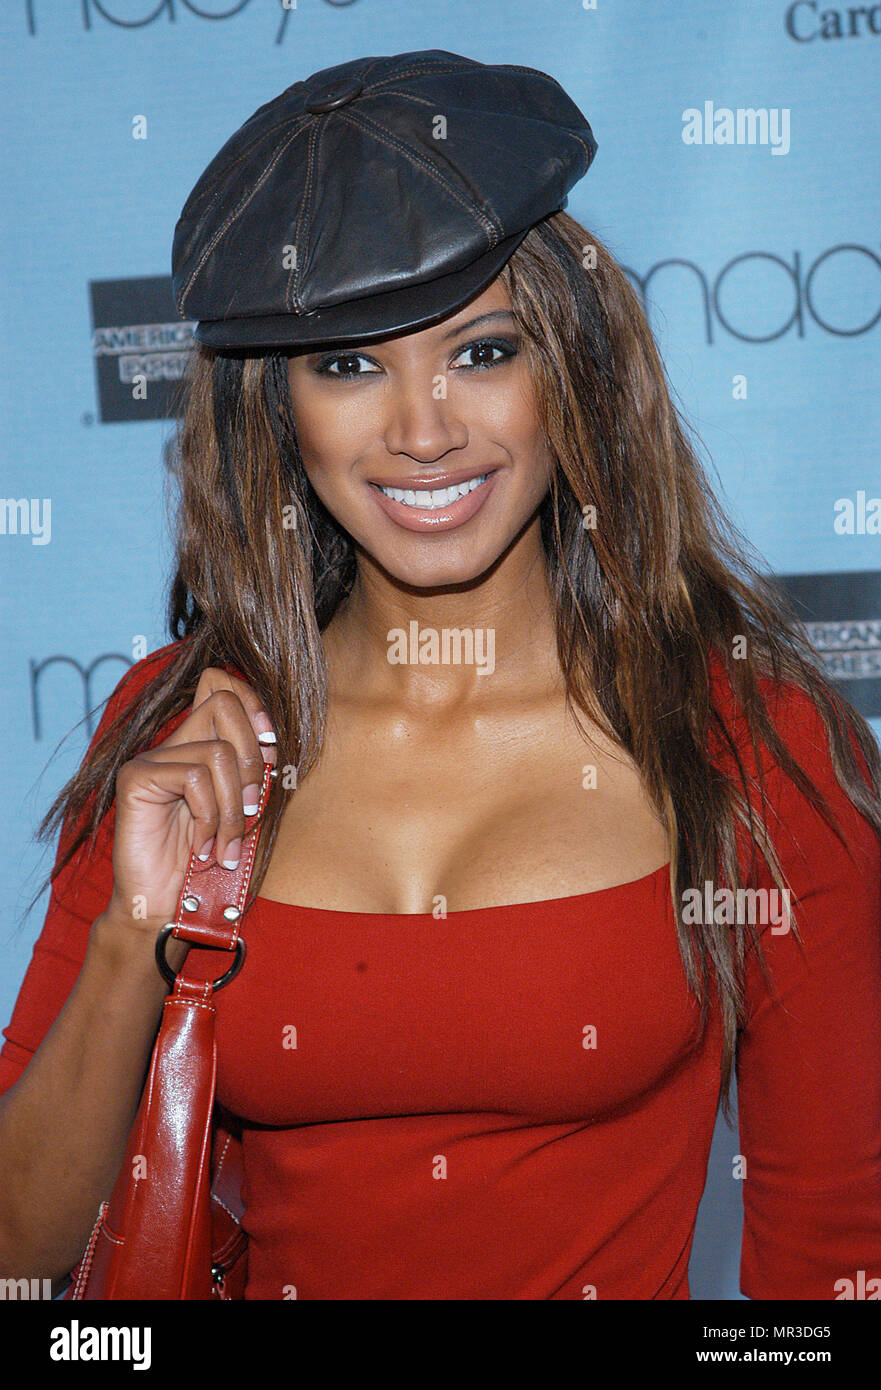 Traci Bingham arriving at the 20th Macy's and American Express Anniversary Gala at the Barker Hangar in Santa Monica Los Angeles. September 28, 2002.BinghamTraci080 Red Carpet Event, Vertical, USA, Film Industry, Celebrities,  Photography, Bestof, Arts Culture and Entertainment, Topix Celebrities fashion /  Vertical, Best of, Event in Hollywood Life - California,  Red Carpet and backstage, USA, Film Industry, Celebrities,  movie celebrities, TV celebrities, Music celebrities, Photography, Bestof, Arts Culture and Entertainment,  Topix, headshot, vertical, one person,, from the year , 2002, inq - Stock Image